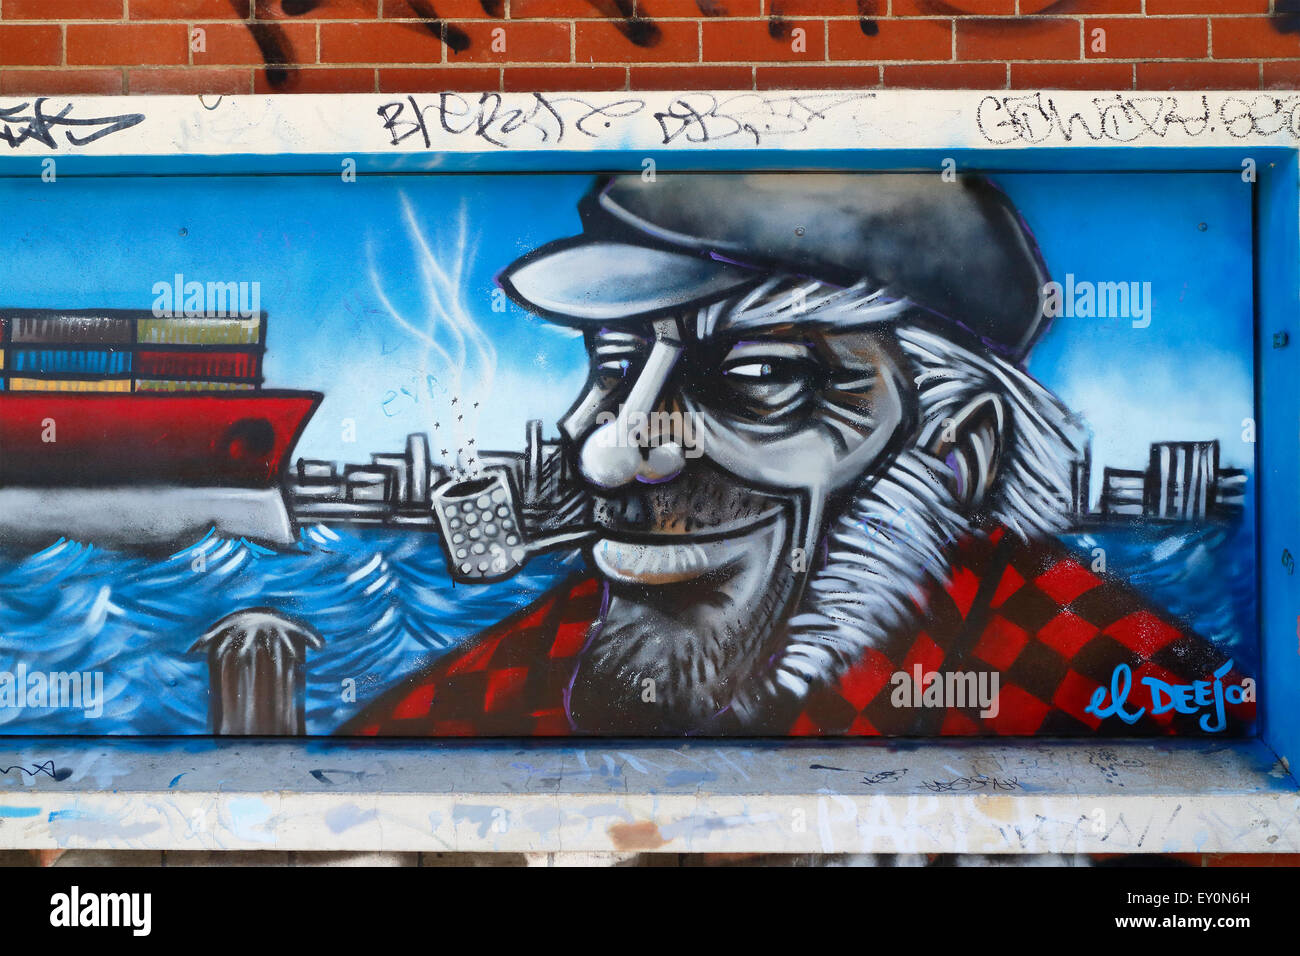 graffiti wall mural  of a sailor smoking a pipe. Fremantle, Western Australia. - Stock Image